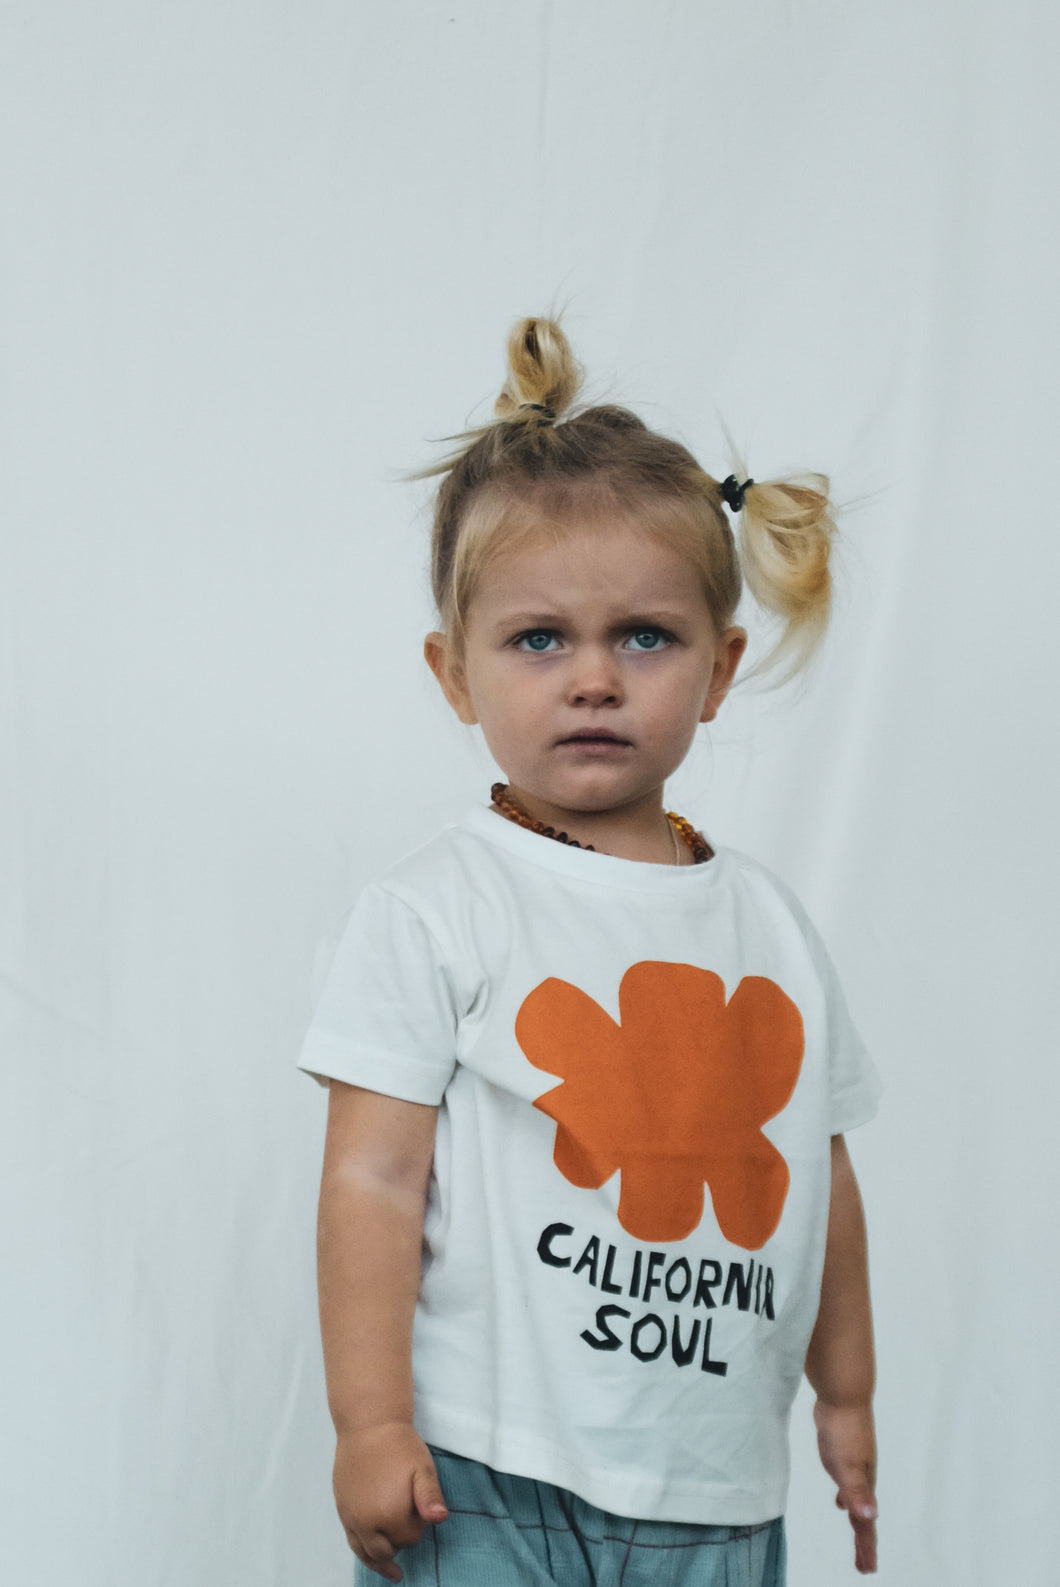 The Cali Tee 'California Soul' - KIDS